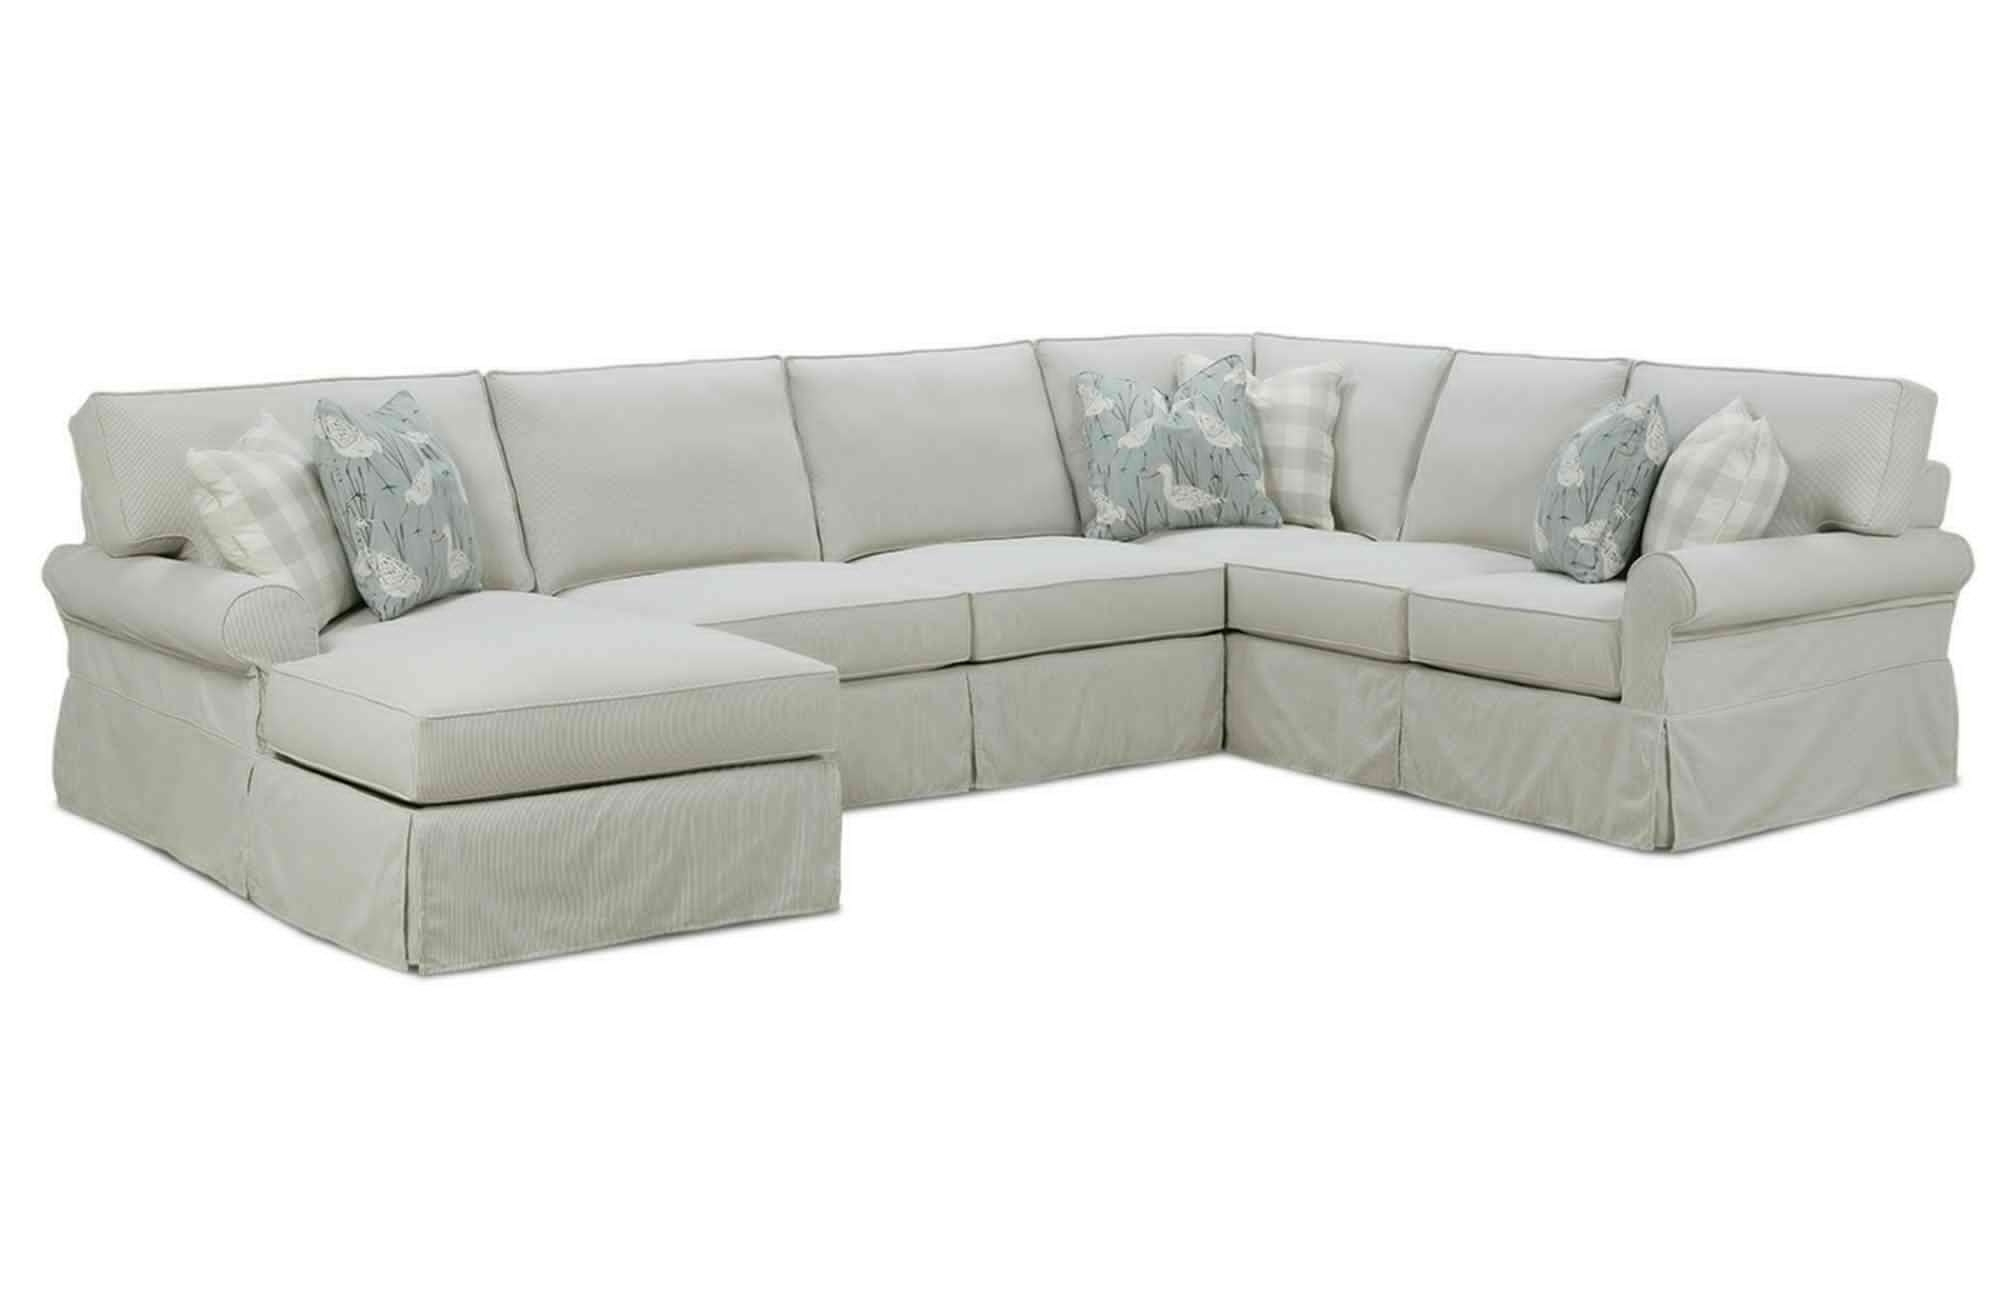 Sectional Sofas In Hyderabad Inside Fashionable Sectional Sofa Design: Wonderful List Of Deep Sectional Sofa (View 14 of 20)